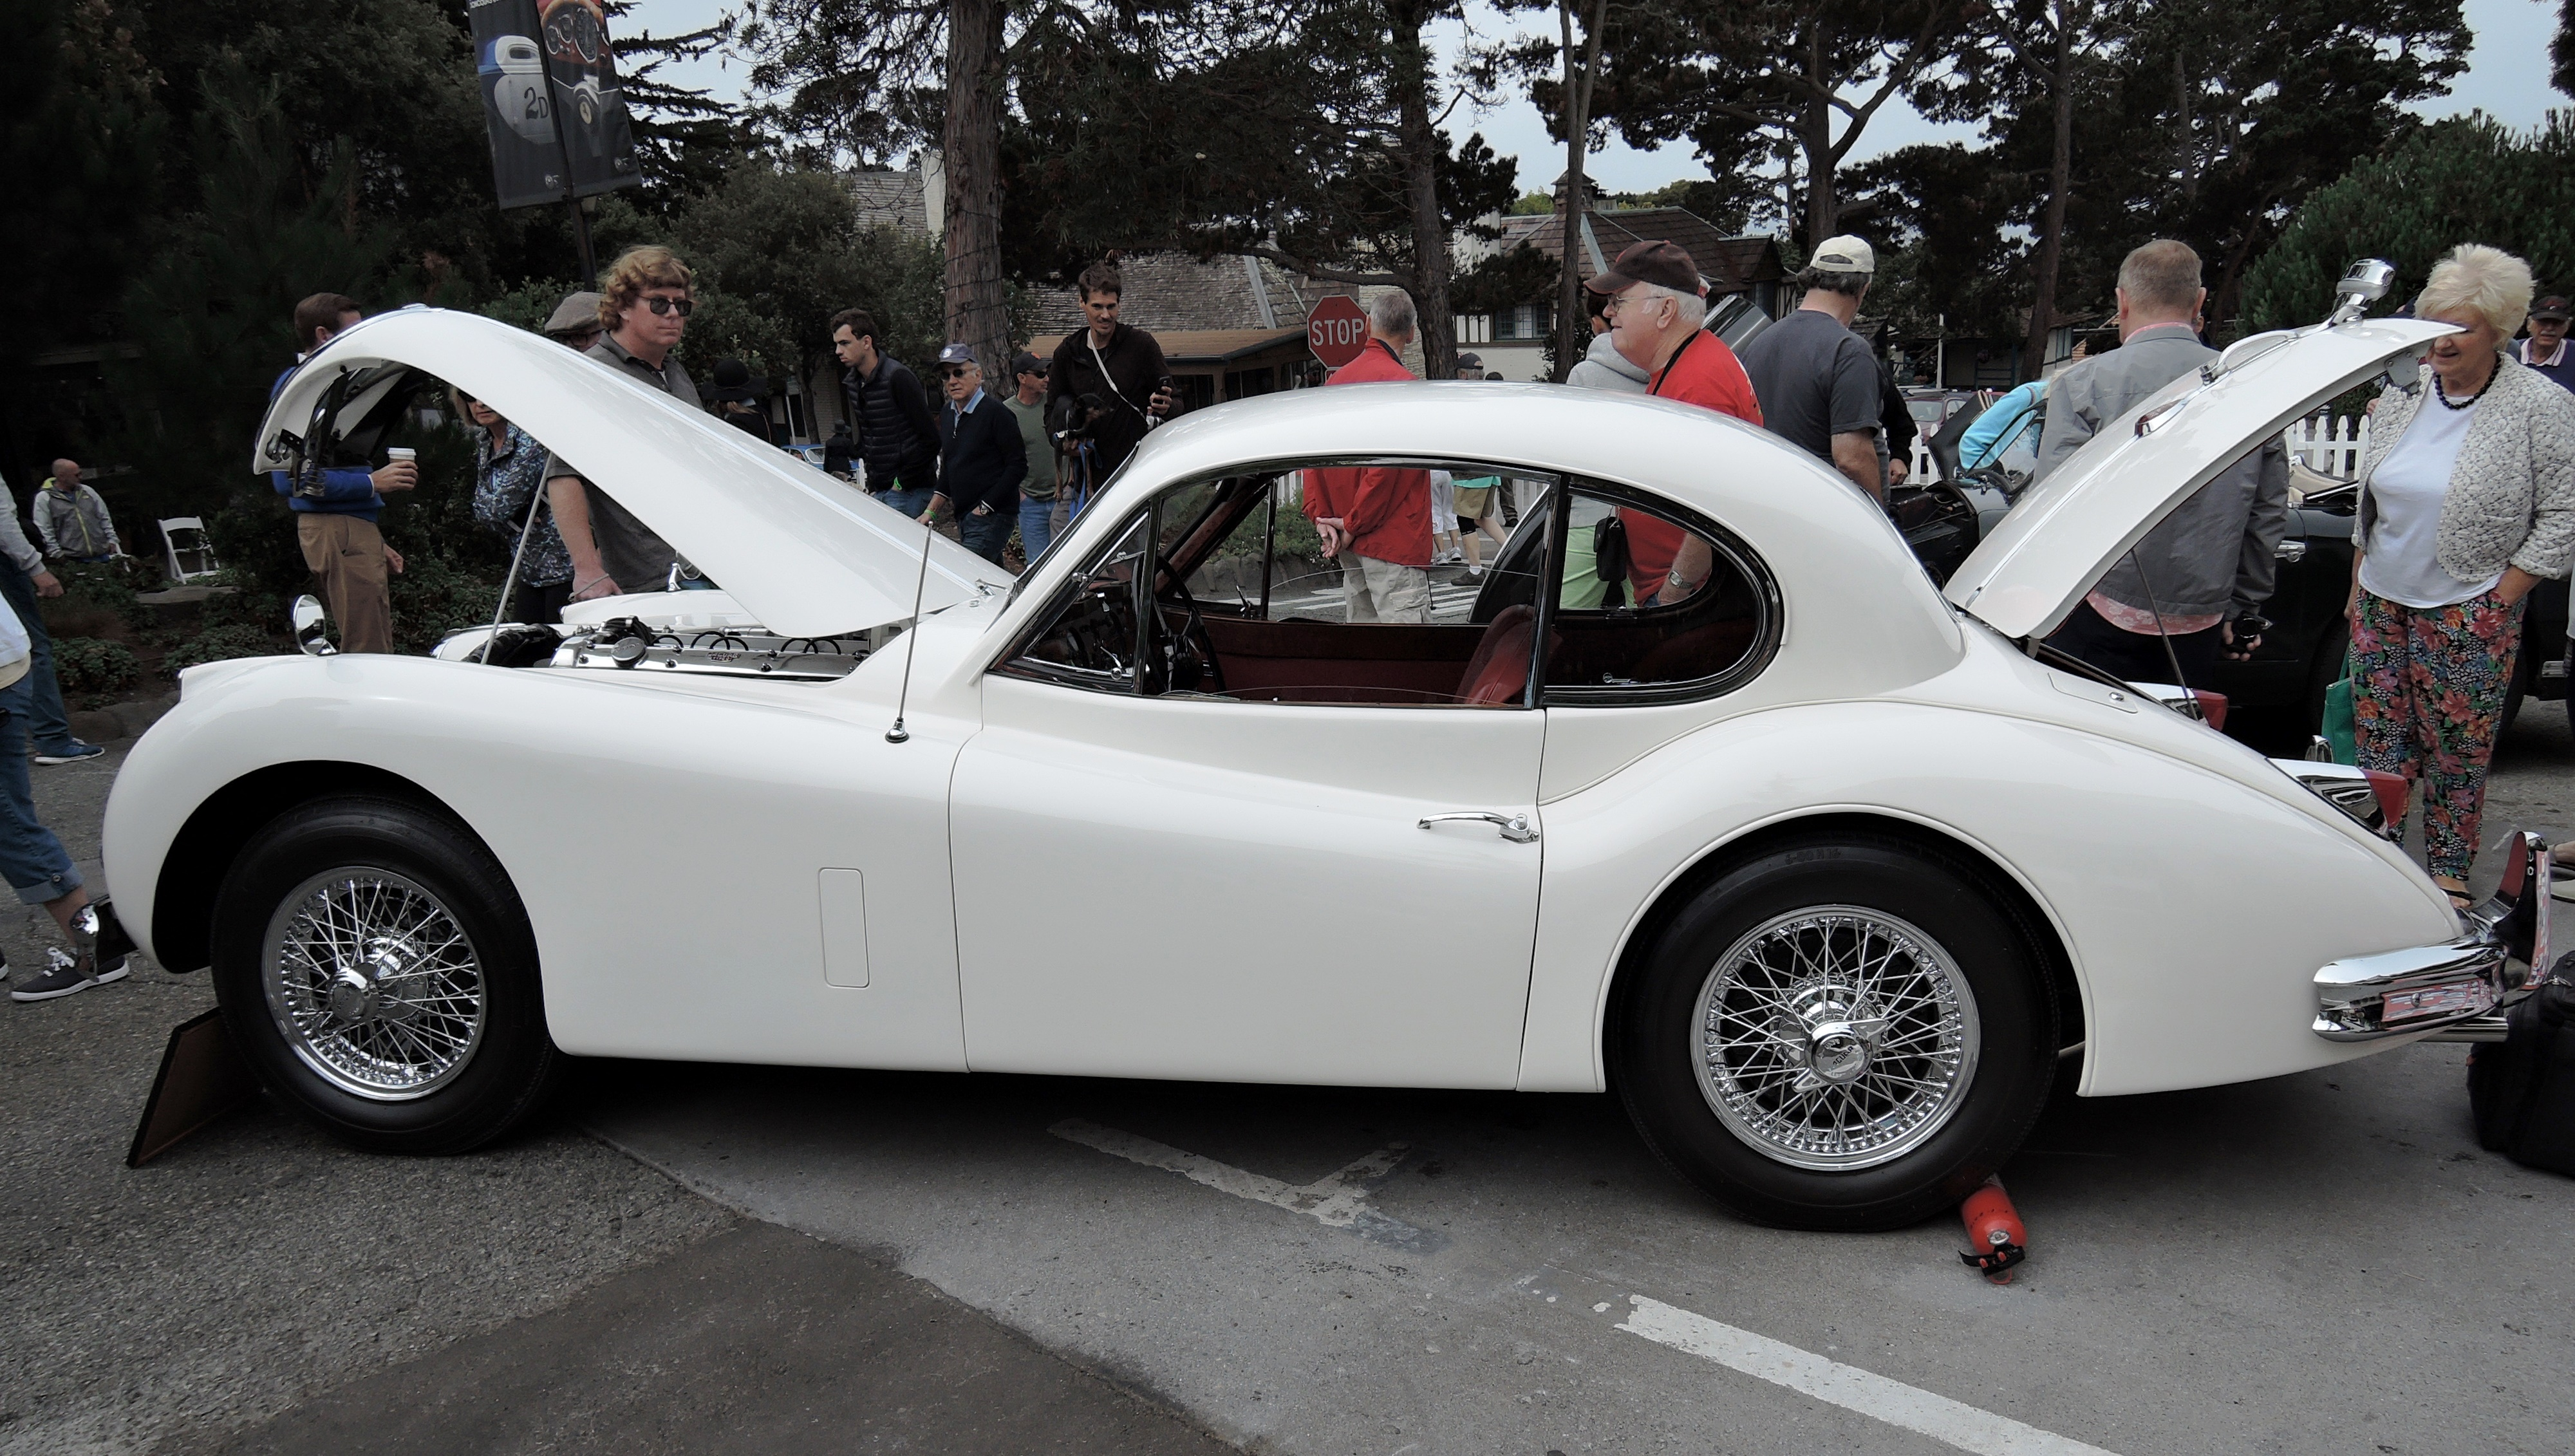 cream/red 1955 Jaguar 3.4L XK140 - Concours on the Ave Carmel